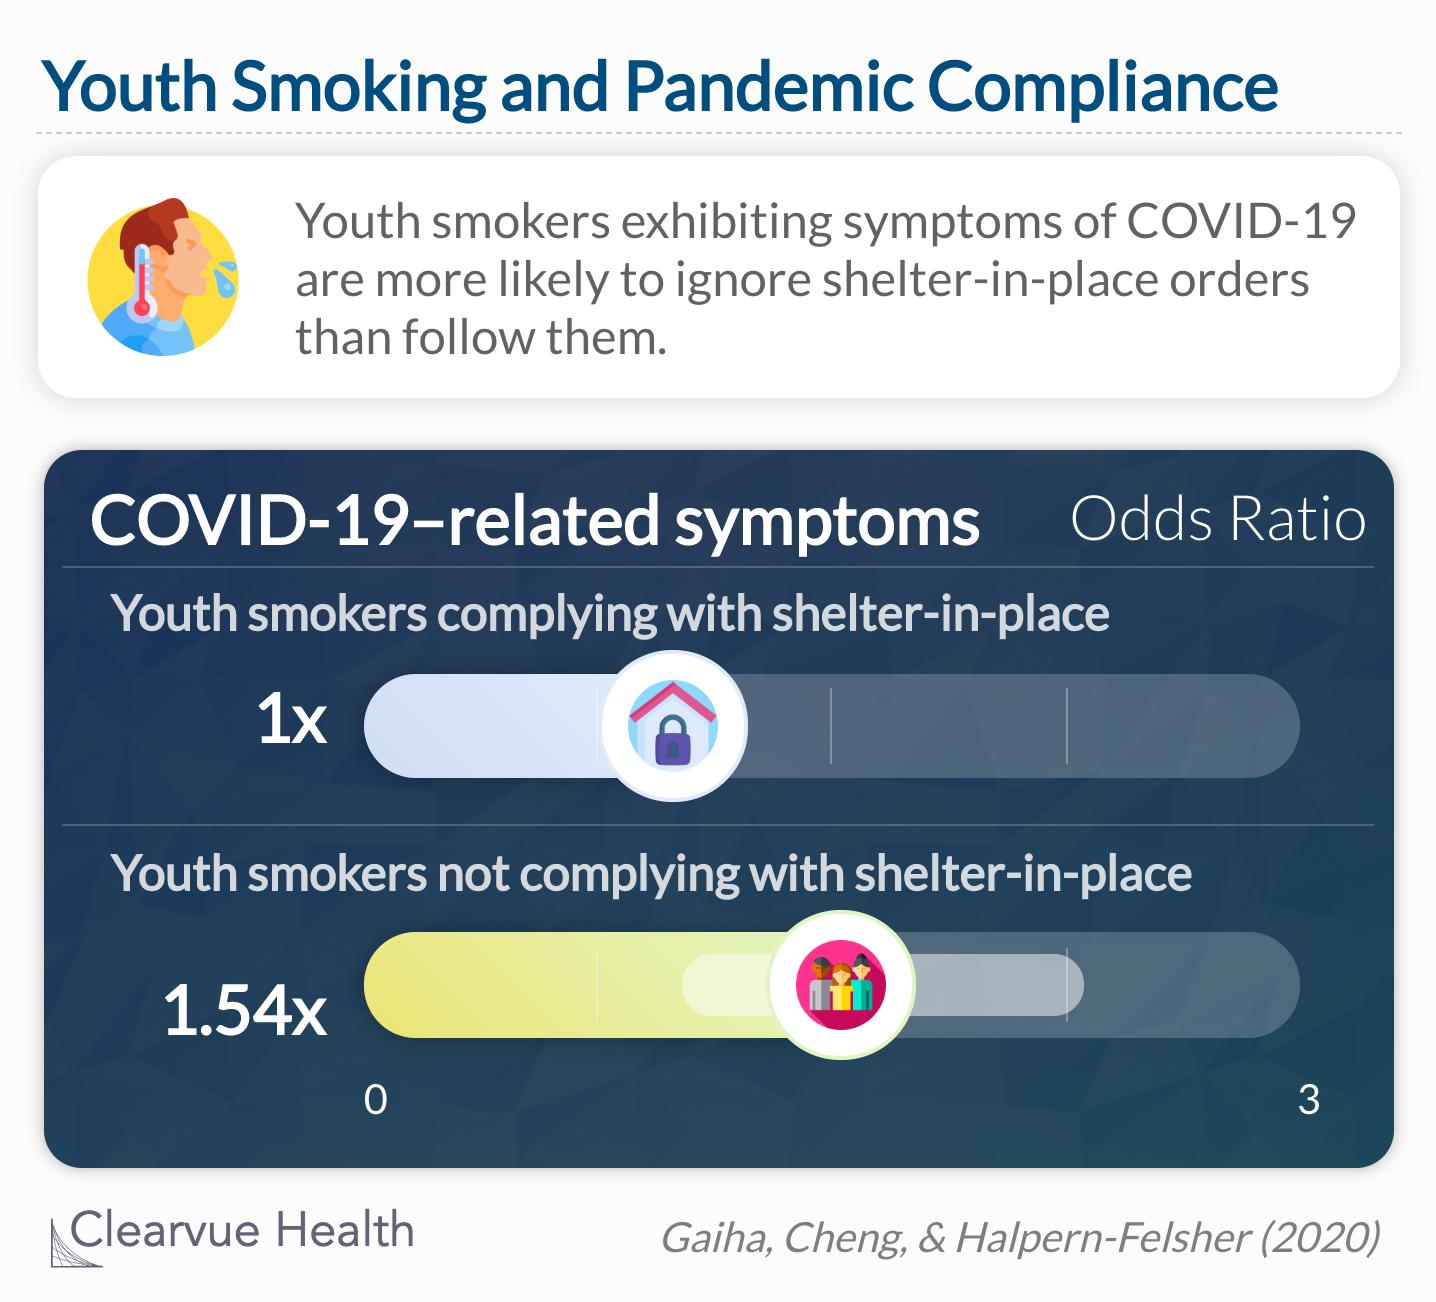 Youth smokers with exhibiting symptoms of COVID-19 are less likely to comply with shelter-in-place orders.